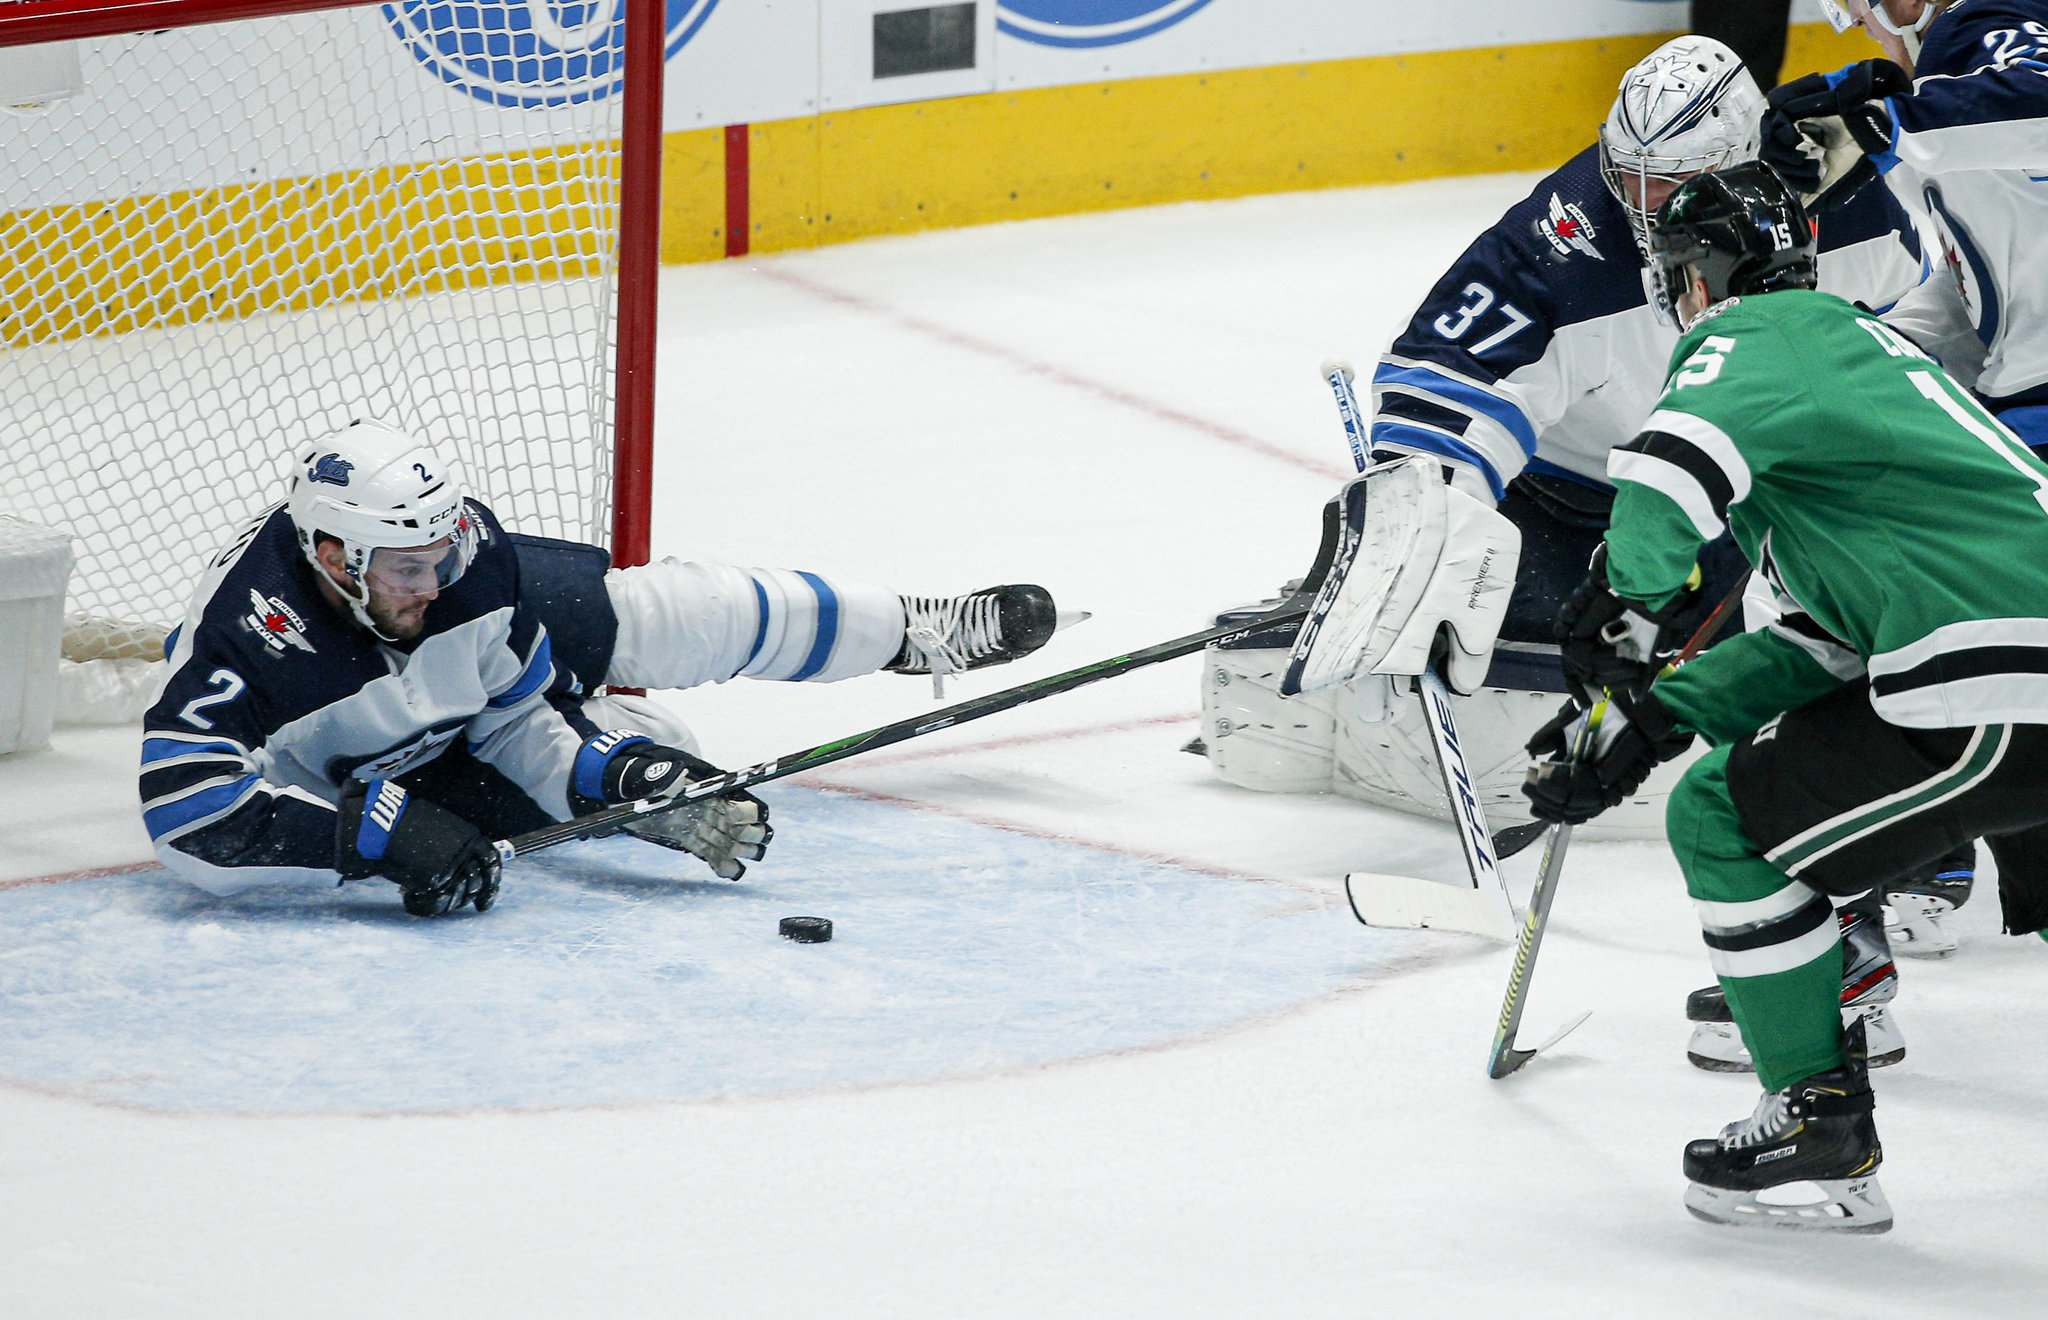 Anthony Bitetto is a depth player who concentrates on defending, blocking shots and transitioning the puck quickly to the forwards. (Brandon Wade / The Associated Press files)